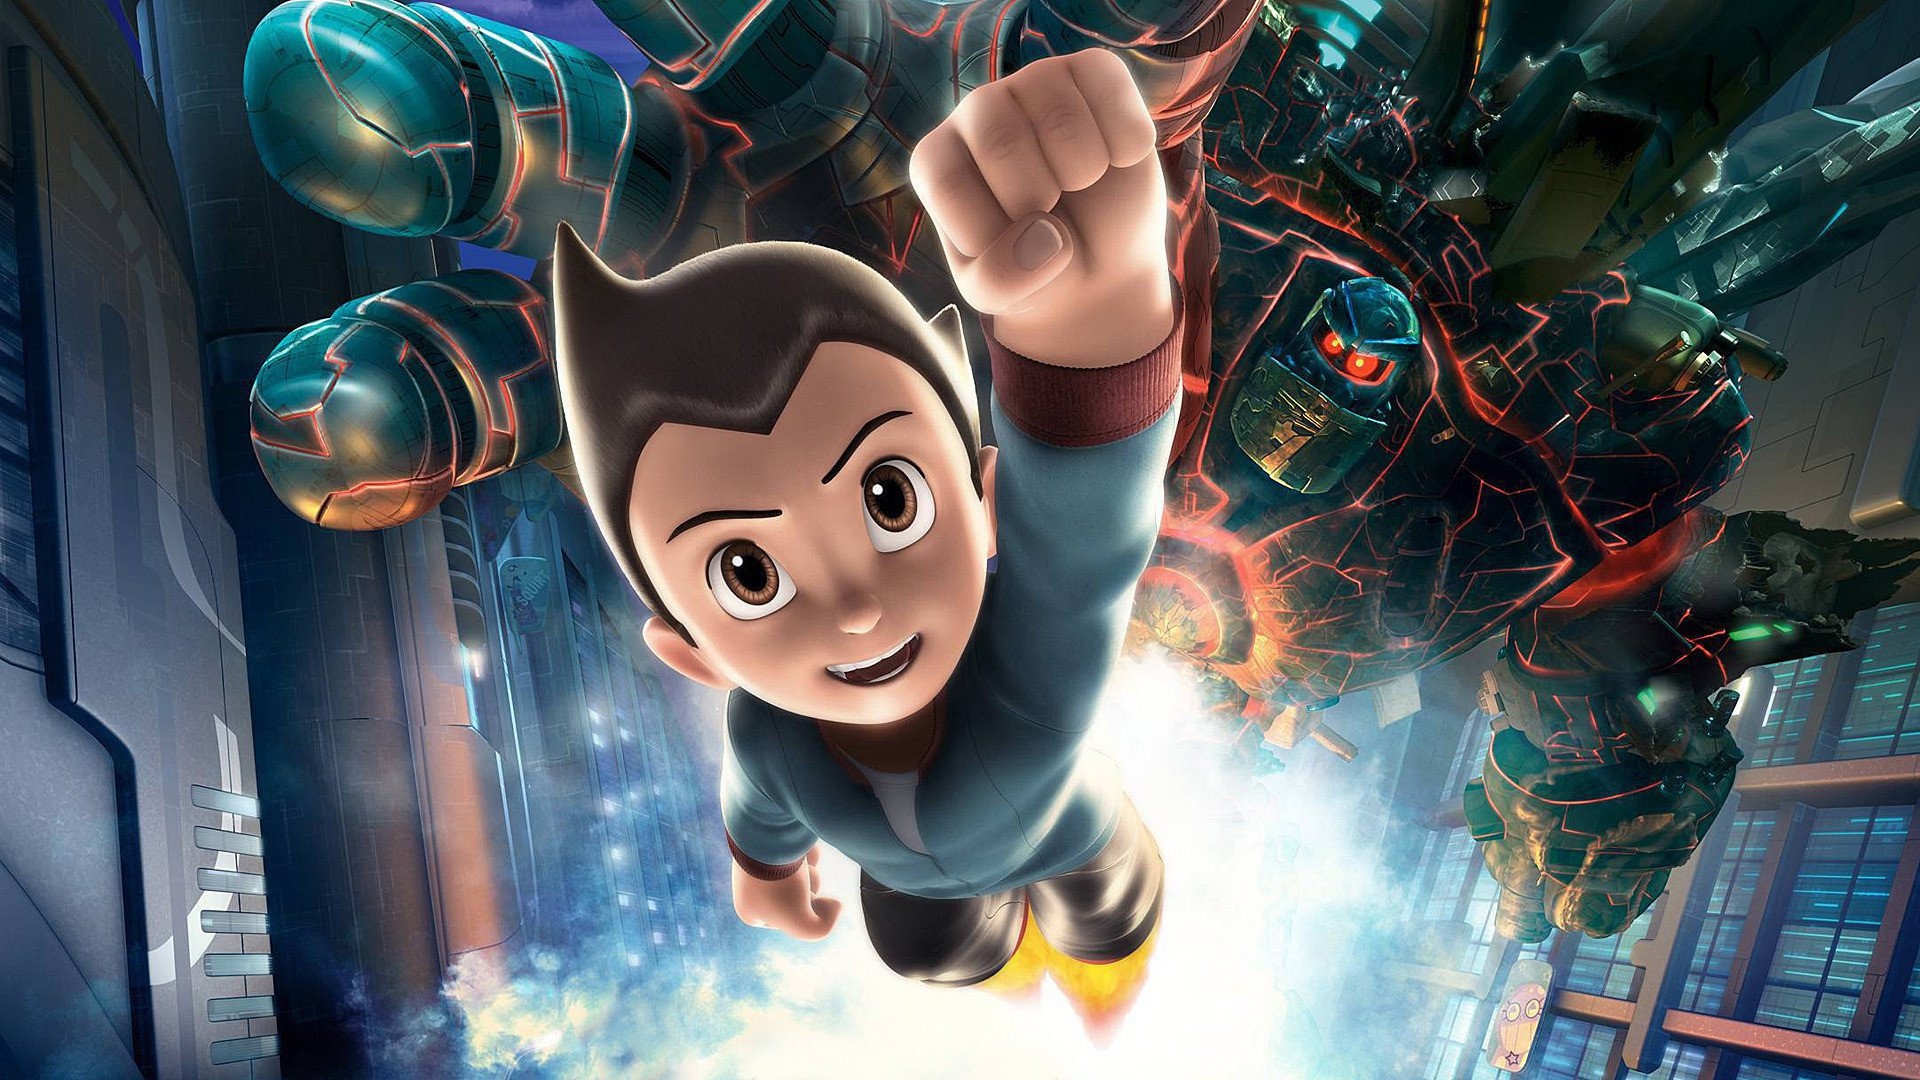 Images of Astro Boy | 1920x1080